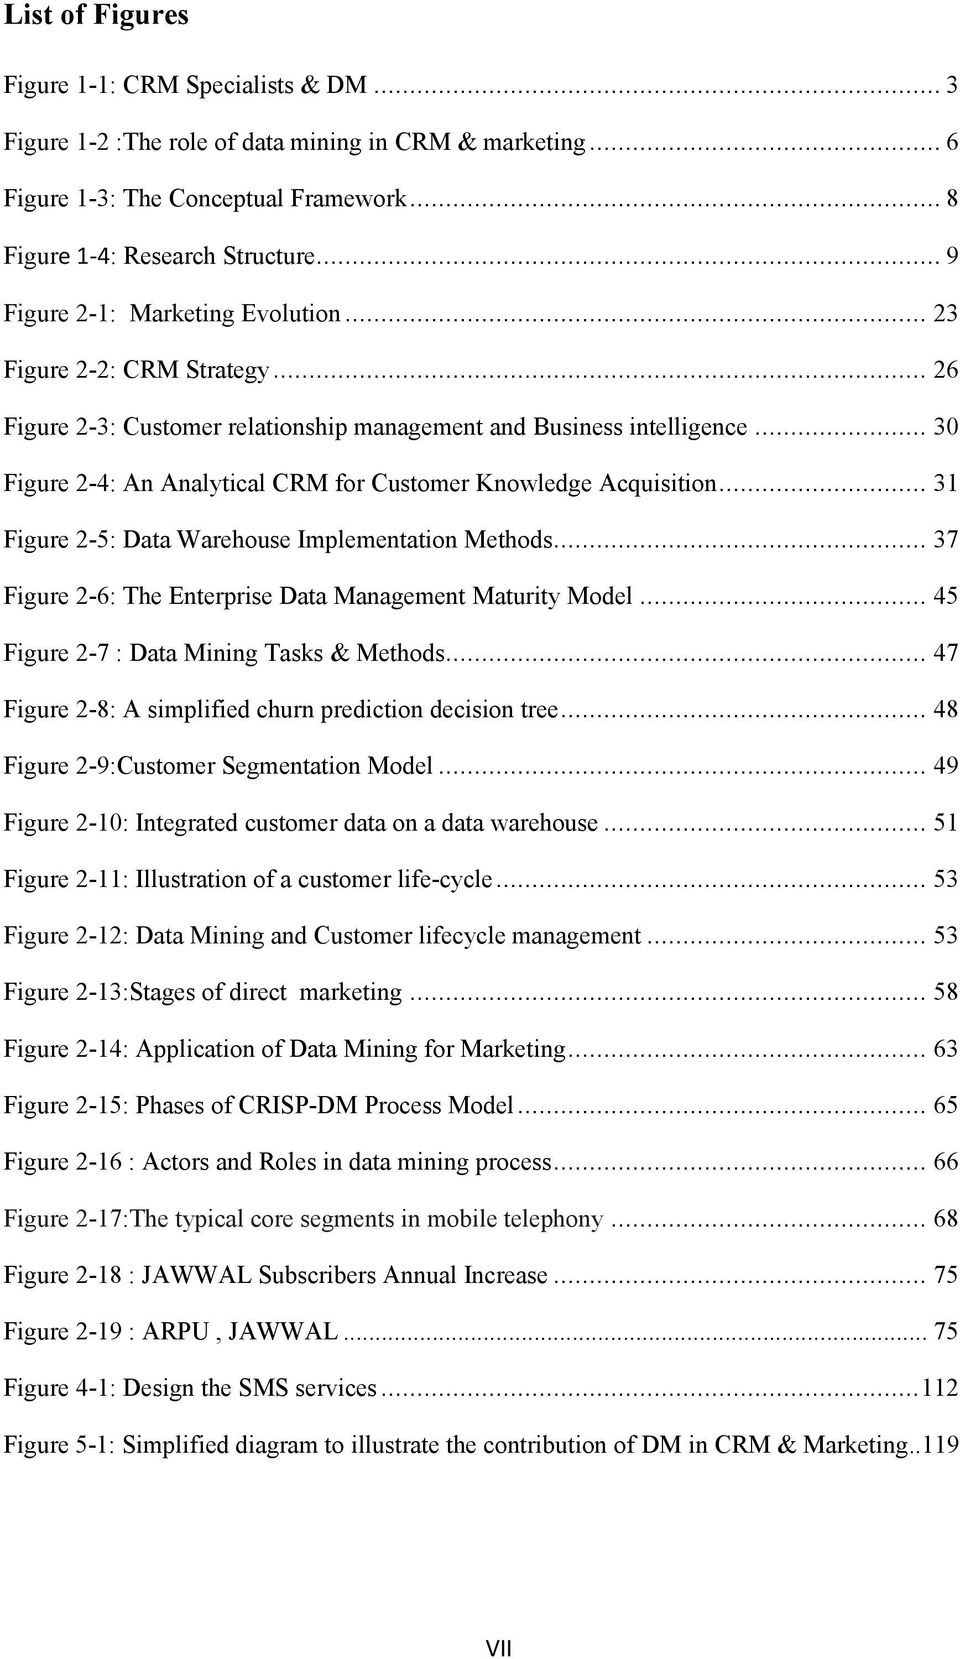 .. 30 Figure 2-4: An Analytical CRM for Customer Knowledge Acquisition... 31 Figure 2-5: Data Warehouse Implementation Methods... 37 Figure 2-6: The Enterprise Data Management Maturity Model.